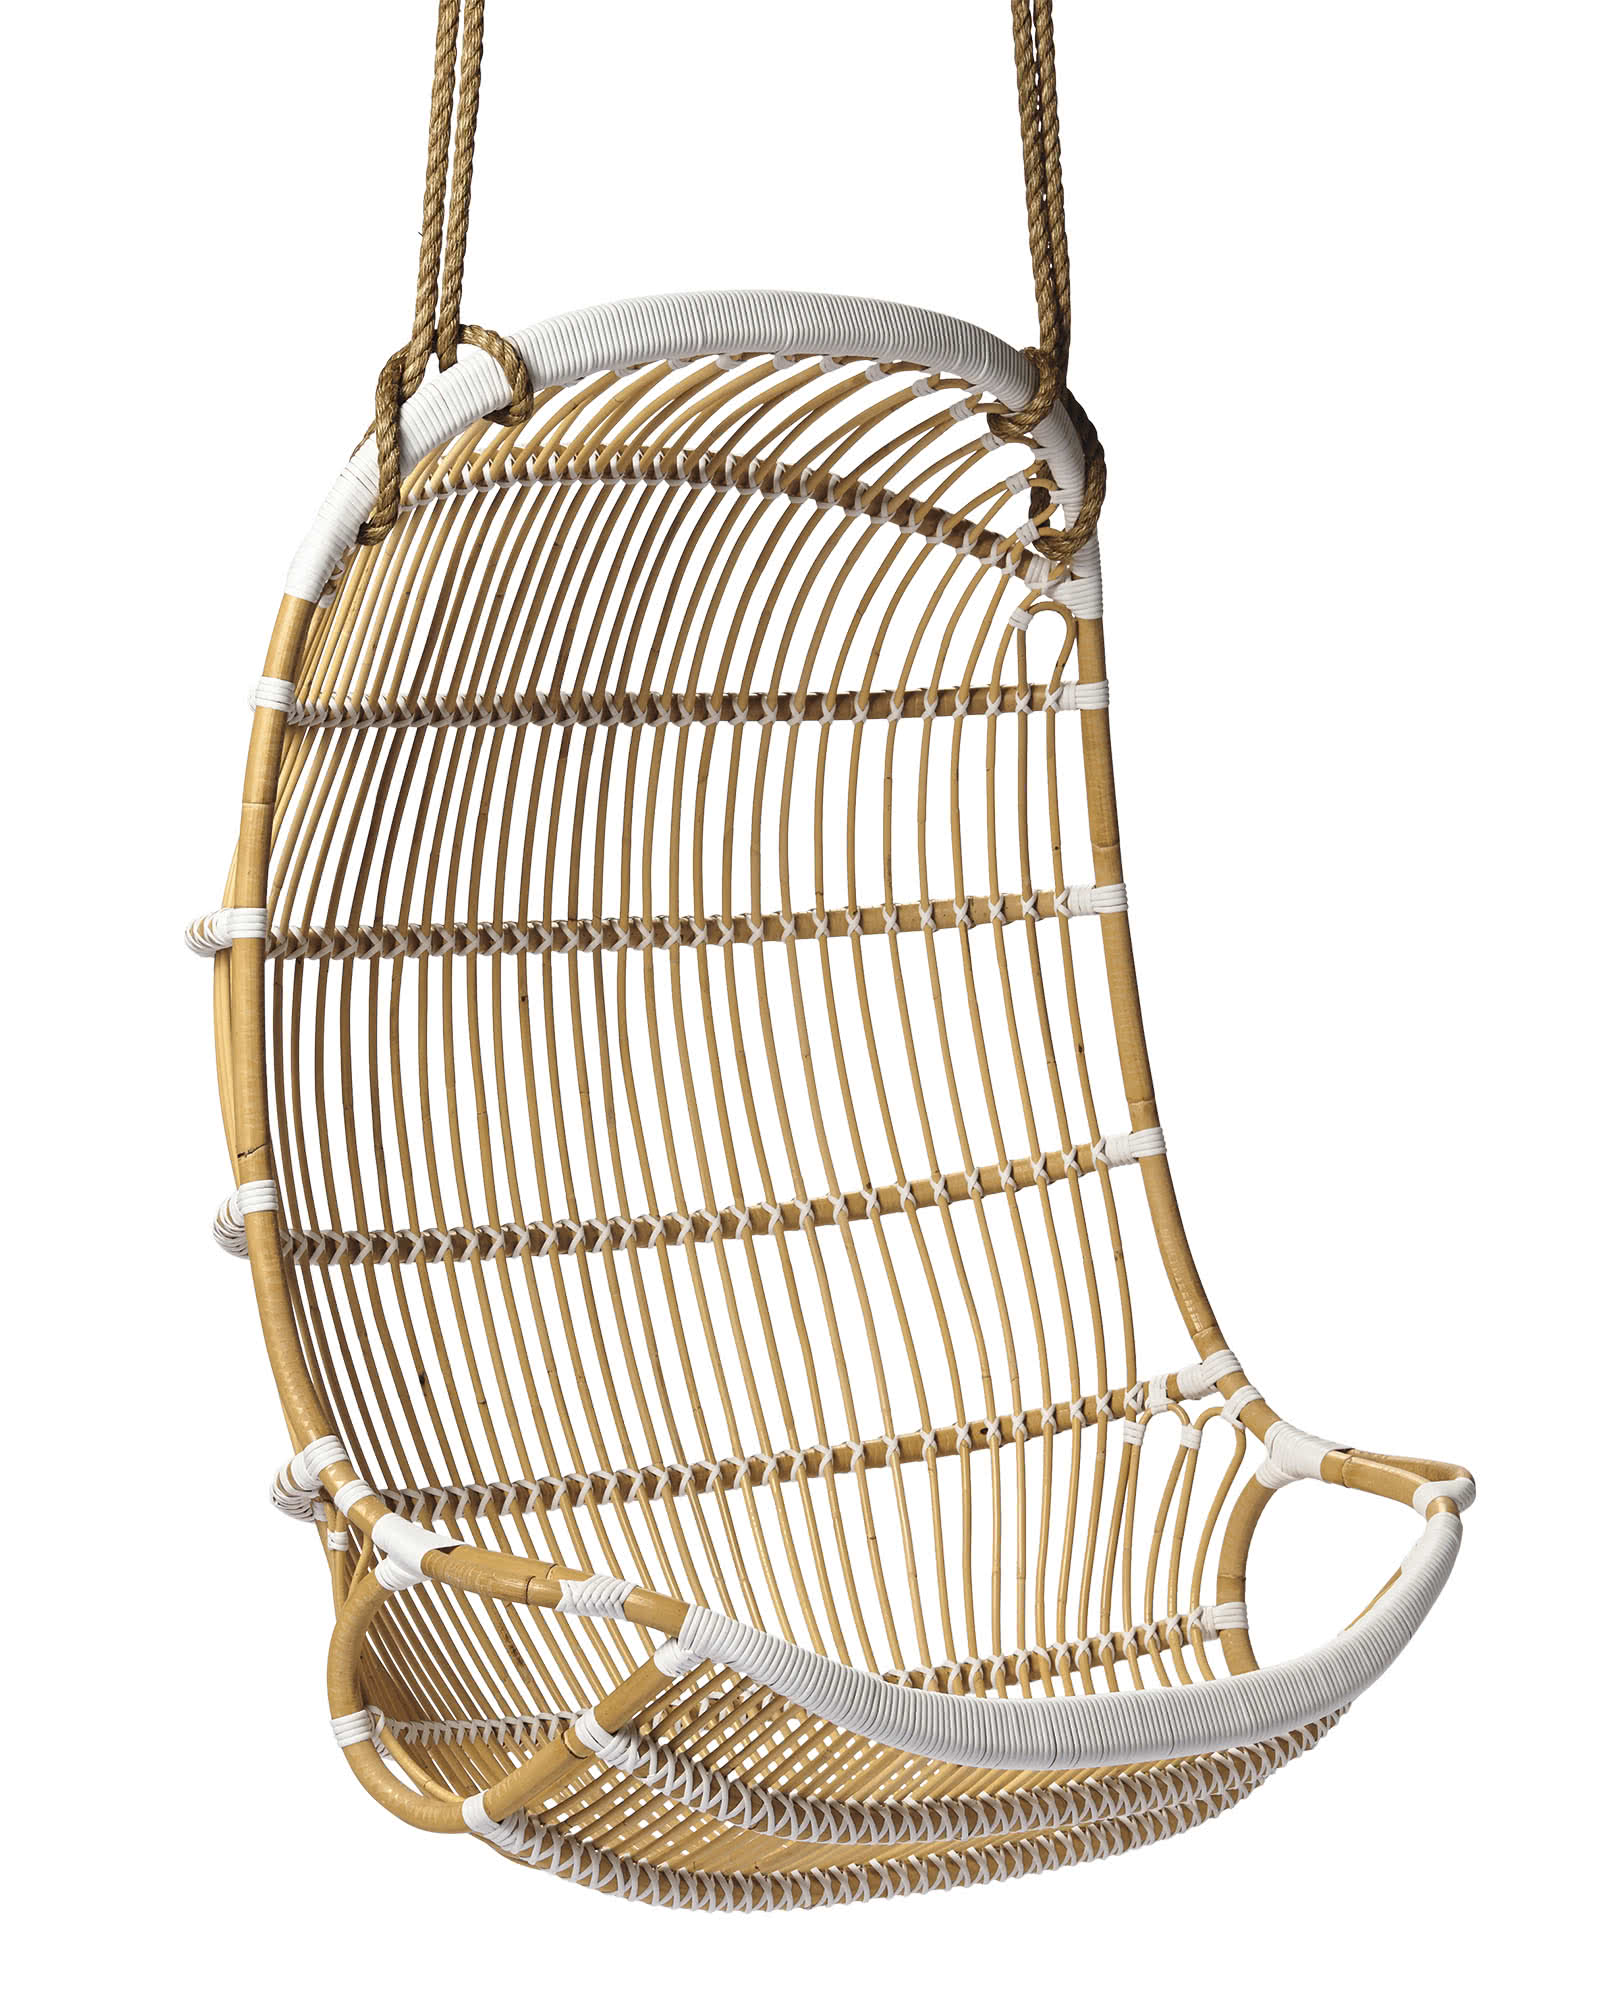 hanging chair cane replica fermob luxembourg lounge double rattan chairs serena and lily